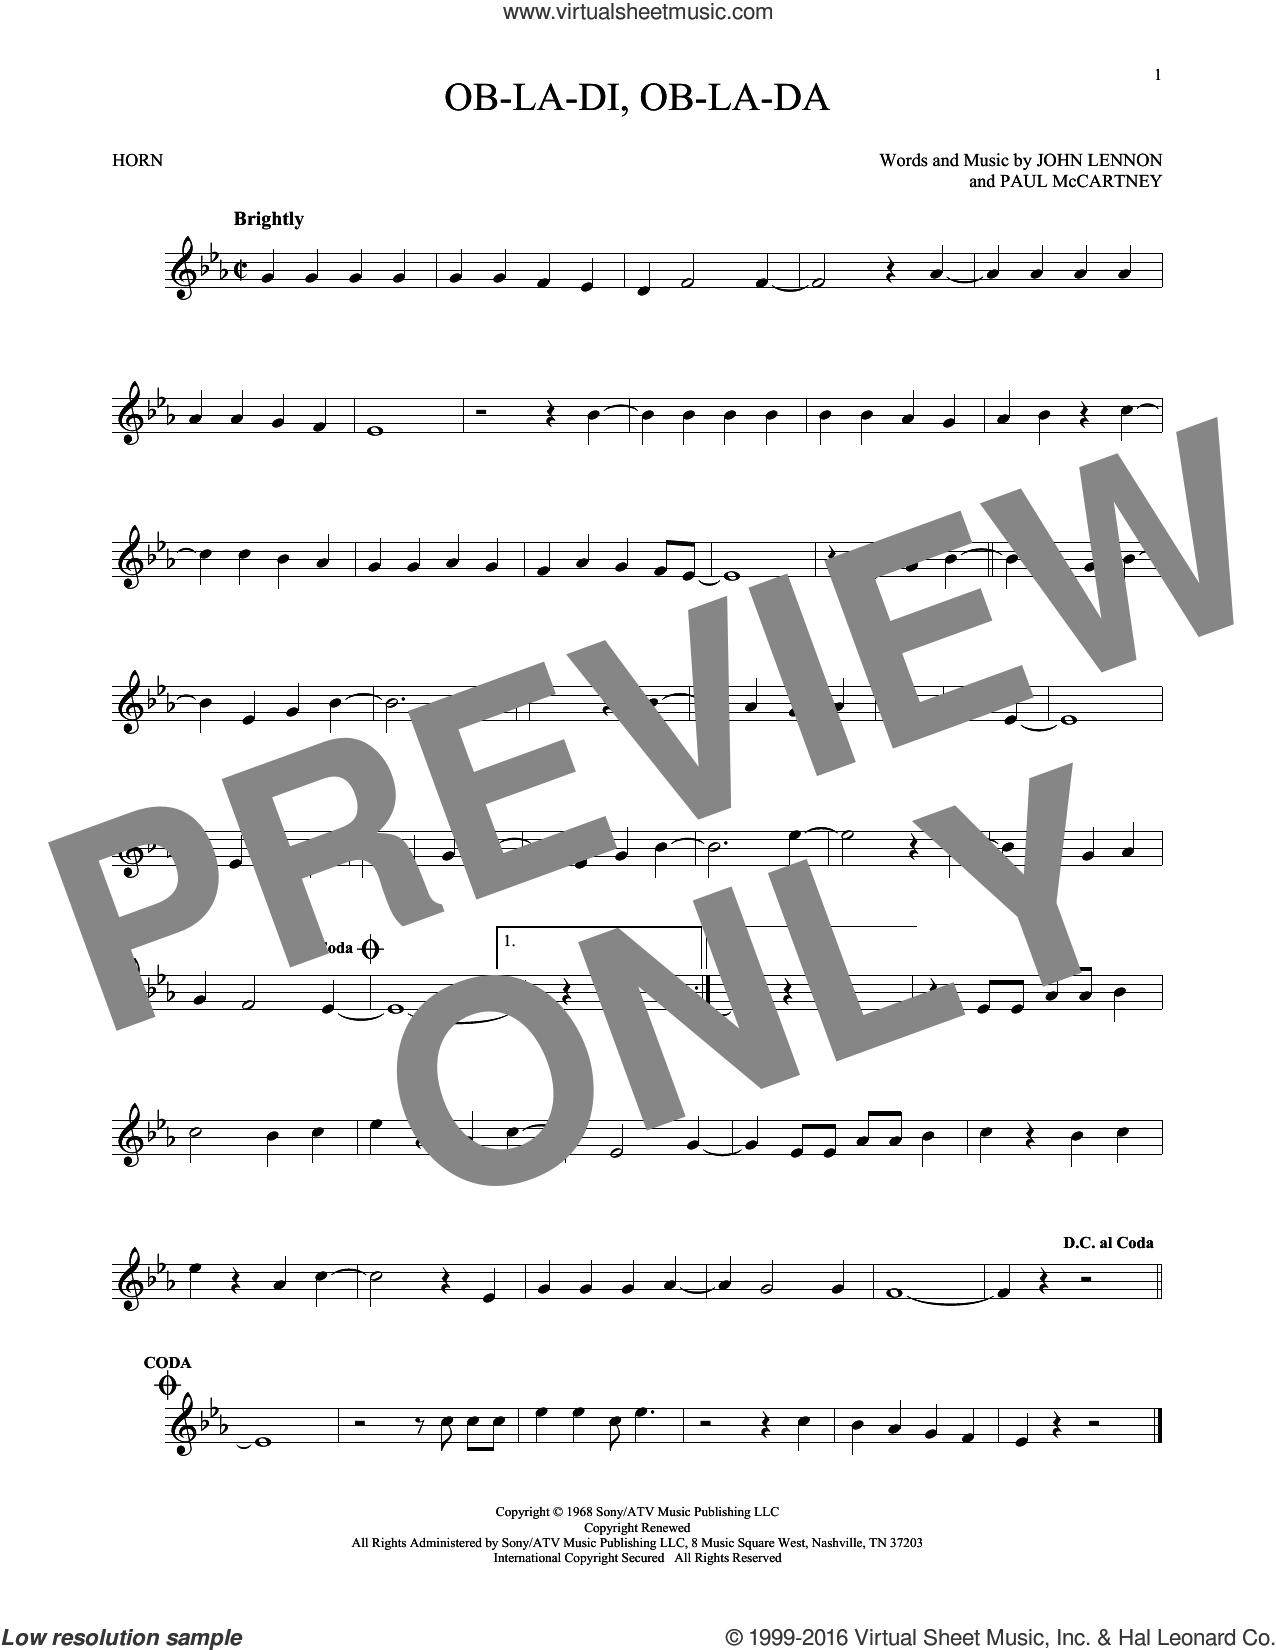 Ob-La-Di, Ob-La-Da sheet music for horn solo by The Beatles, John Lennon and Paul McCartney, intermediate skill level